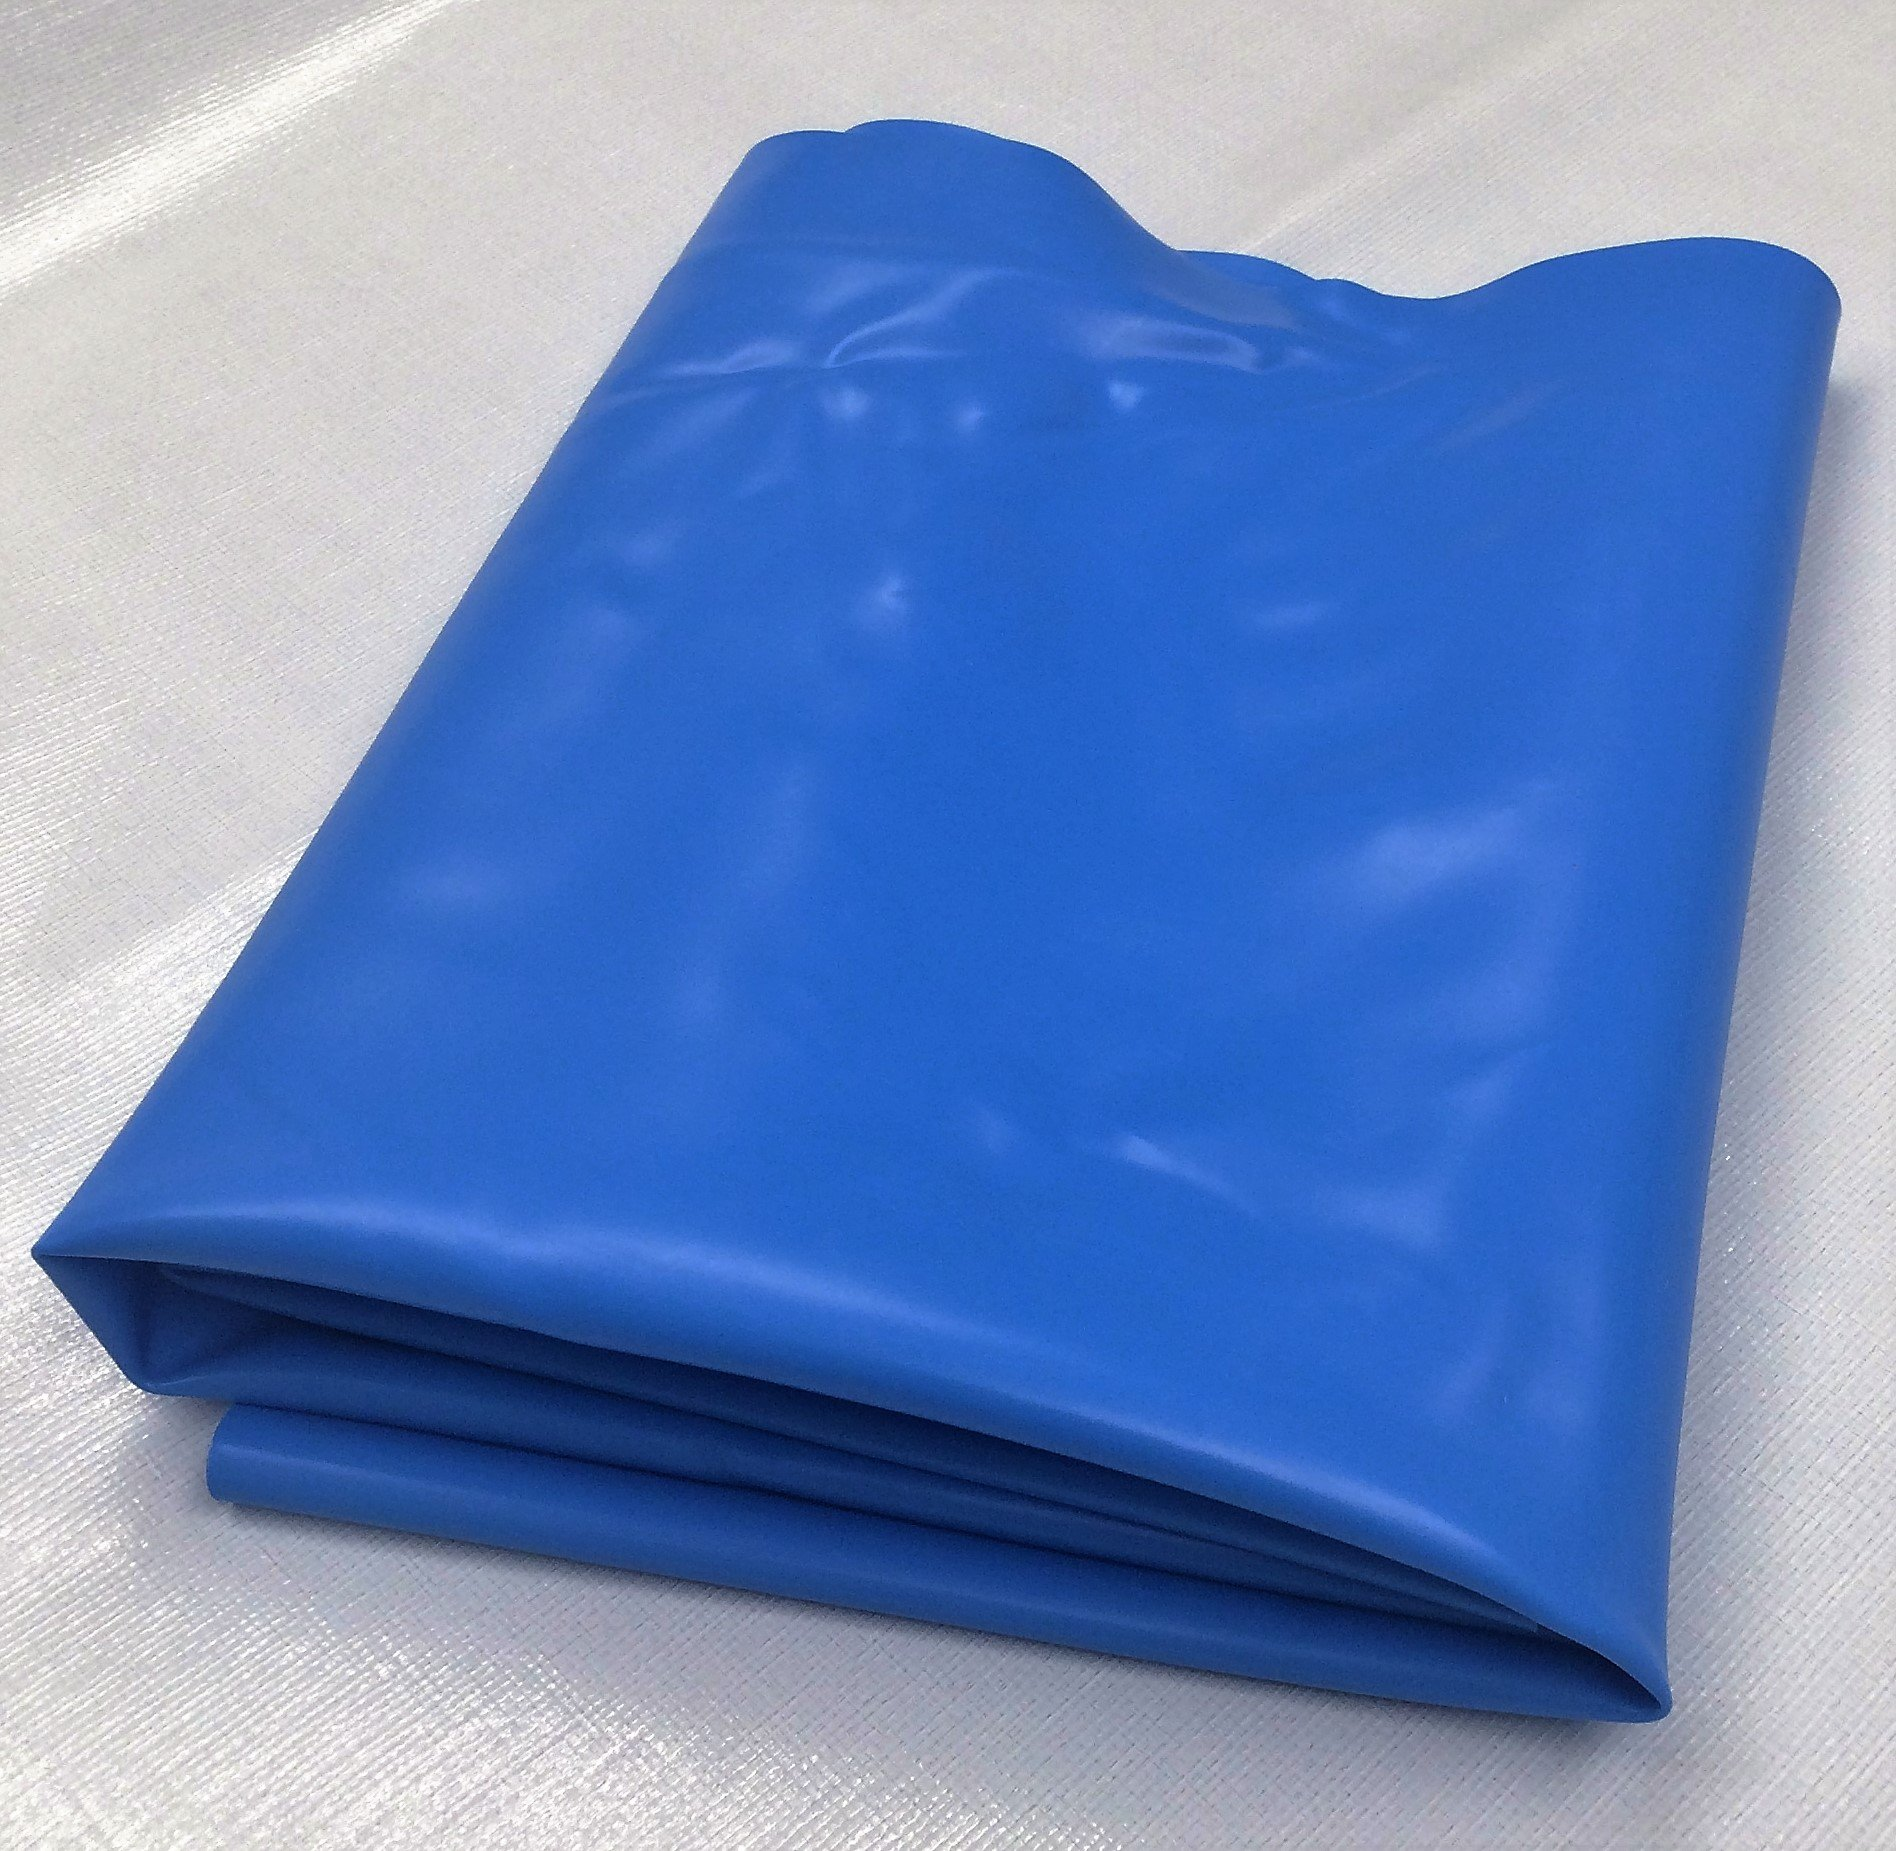 Blue Pond Liner - 25' x 30' in 30-mil Blue PVC for Koi Ponds, Streams, Fountains and Water Gardens by USA Pond Products